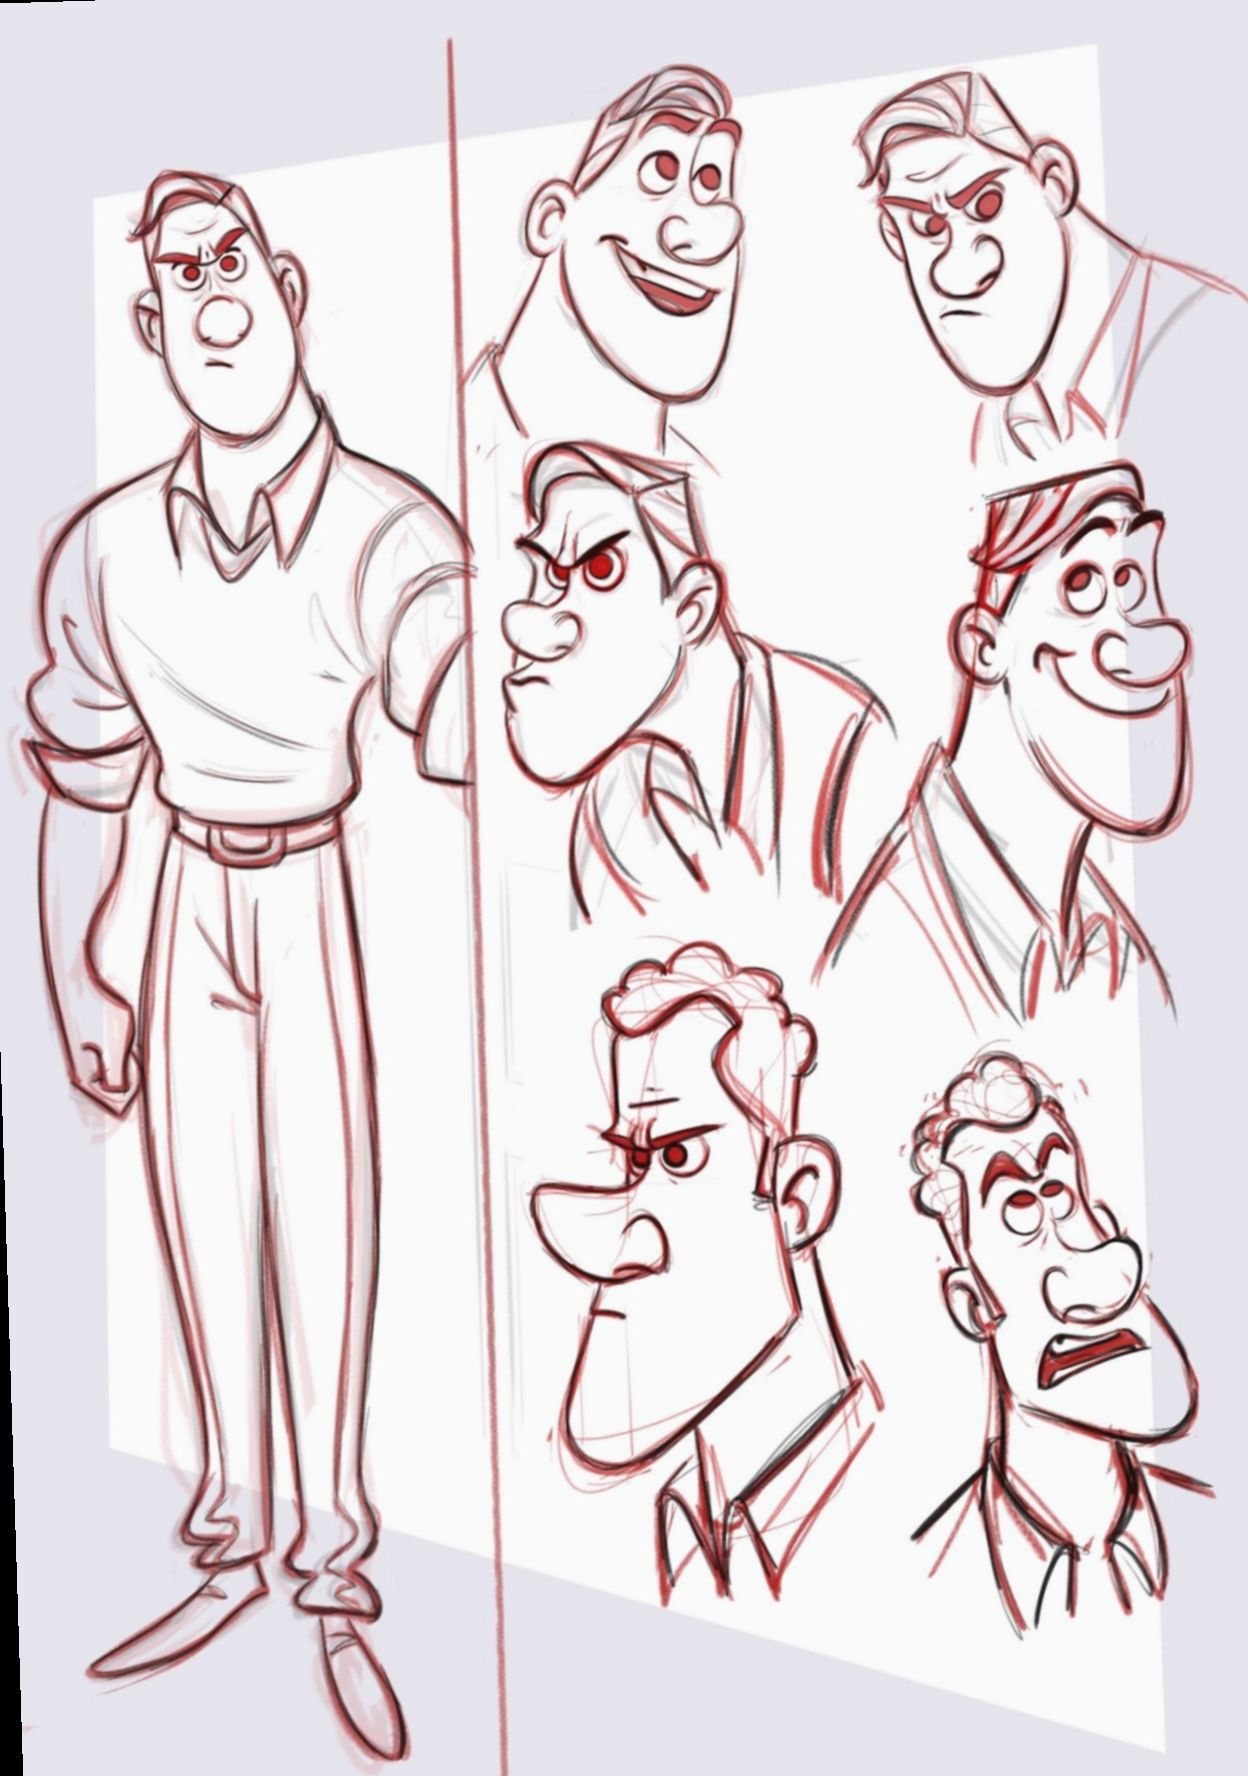 Anime Face Shapes Character Design Bnhacosplay Bokunoheroacademiacosplay Anime Character Design Sketches Cartoon Character Design Character Design Male